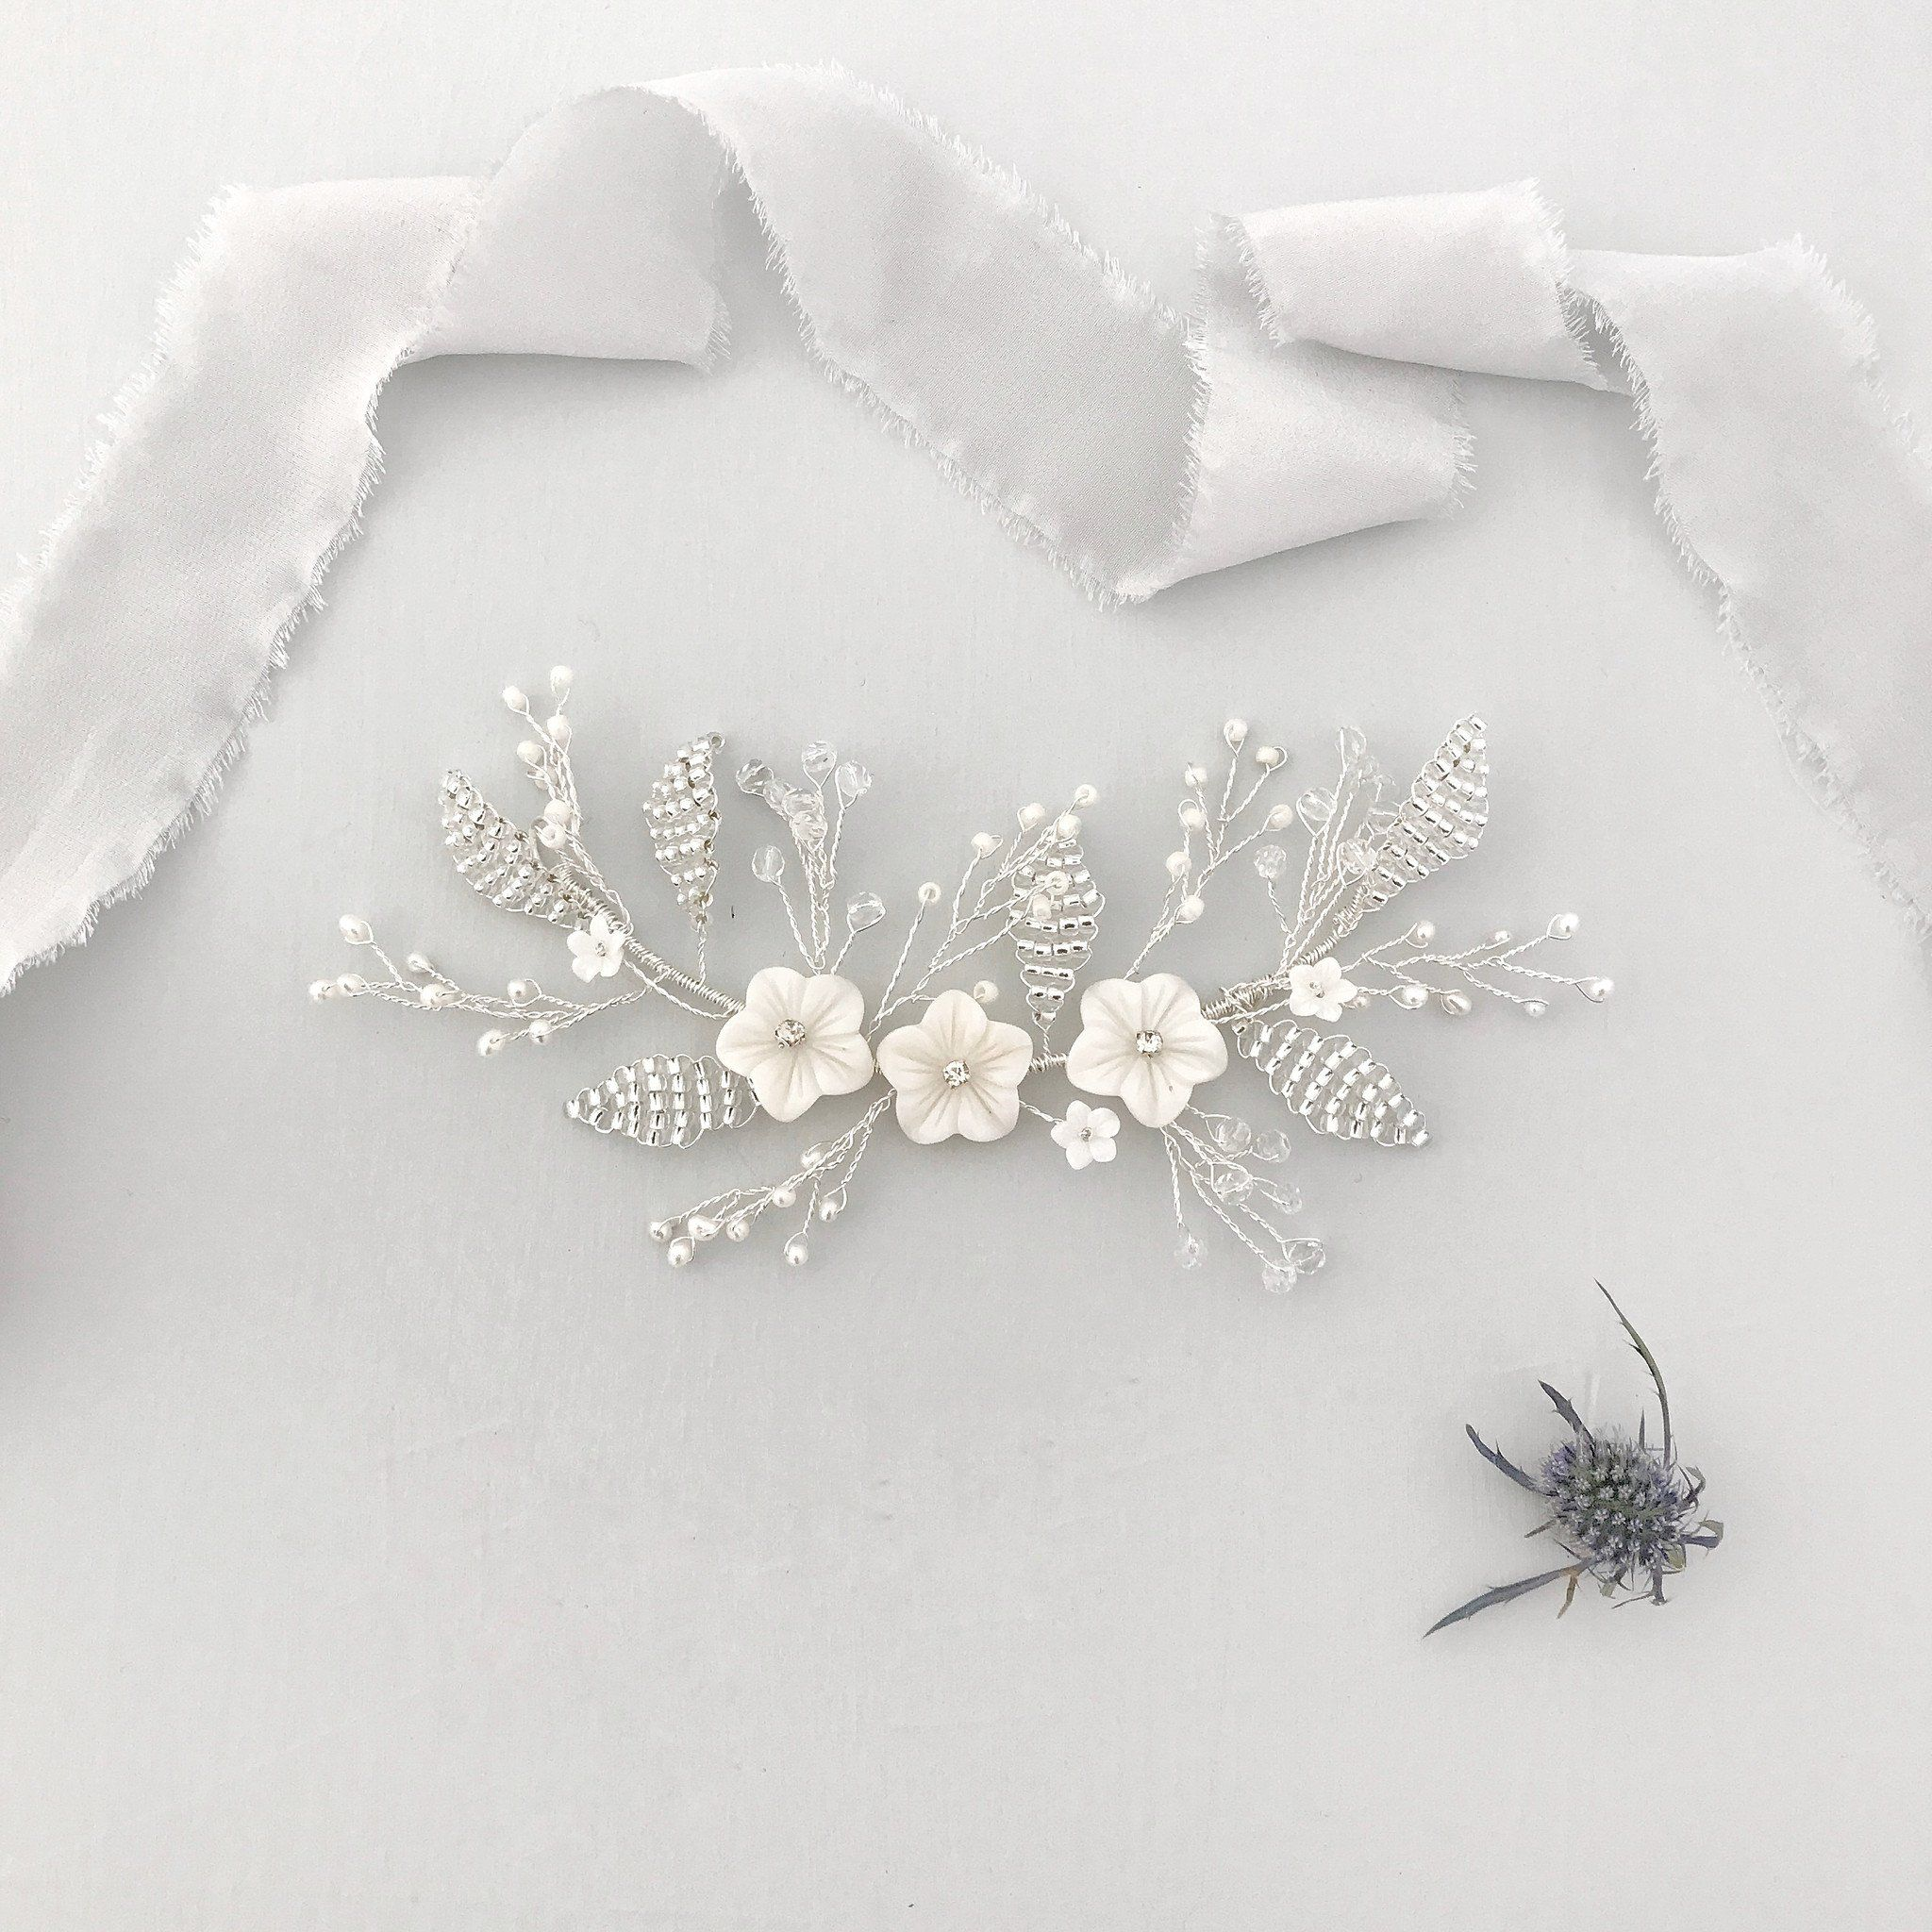 New* Silver mother of pearl floral wedding hair vine - \'Elvie ...